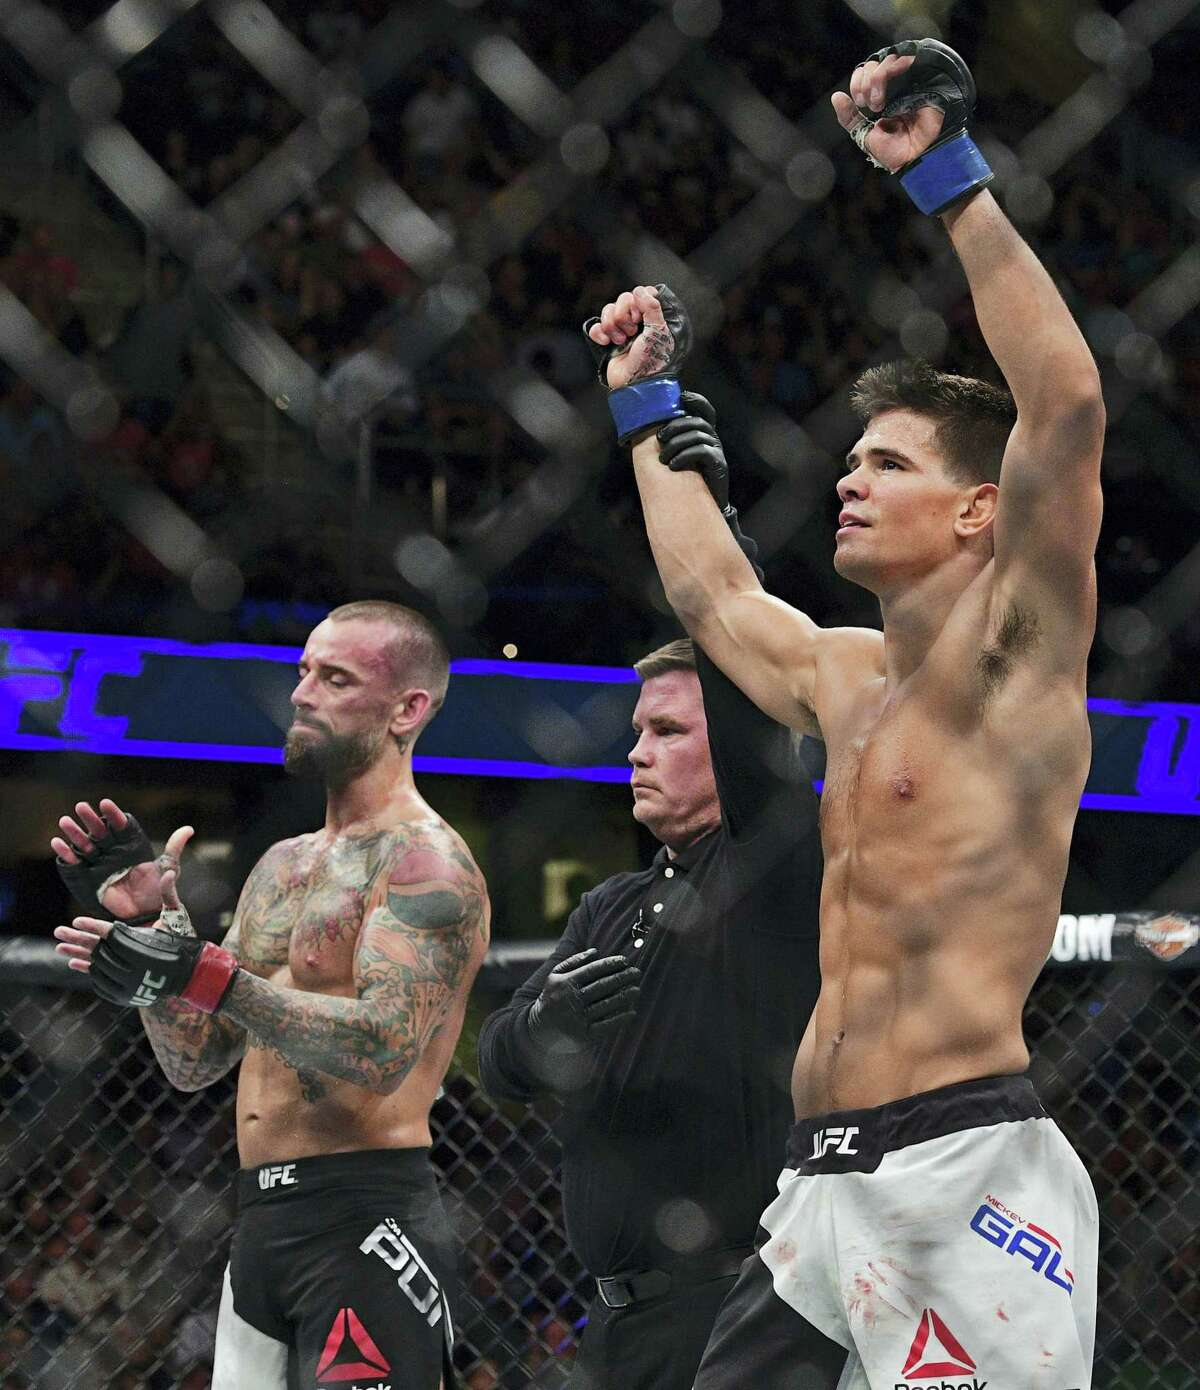 Mickey Gall has his arm raised by the referee after defeating CM Punk during a welterweight bout at UFC 203 on Saturday in Cleveland.